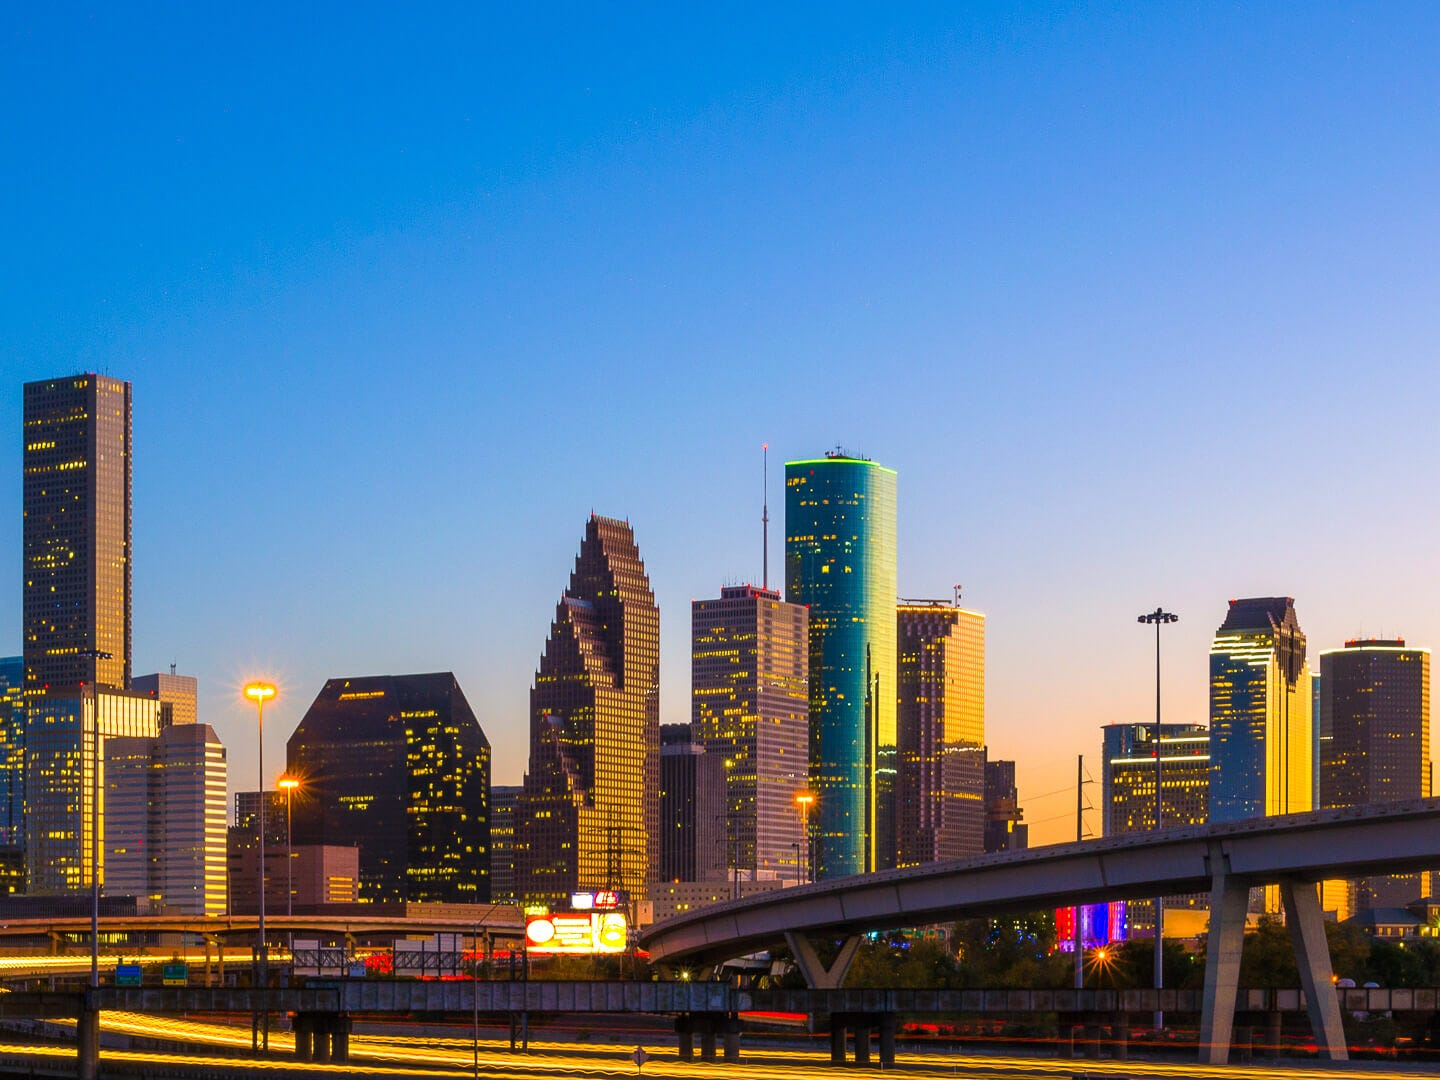 No. 3: Houston. Thanksgiving trip cost: $822.50. Christmas trip cost: $829.50. Hotels in Houston are especially affordable during both Thanksgiving and Christmas. It boasts the fourth-lowest average hotel costs of all the destinations in this ranking. It's also the second-cheapest place to fly to for Thanksgiving — with round-trip flights averaging $244.50 — and the fifth-cheapest place to fly to during Christmas, with round-trip flights averaging $265.50.